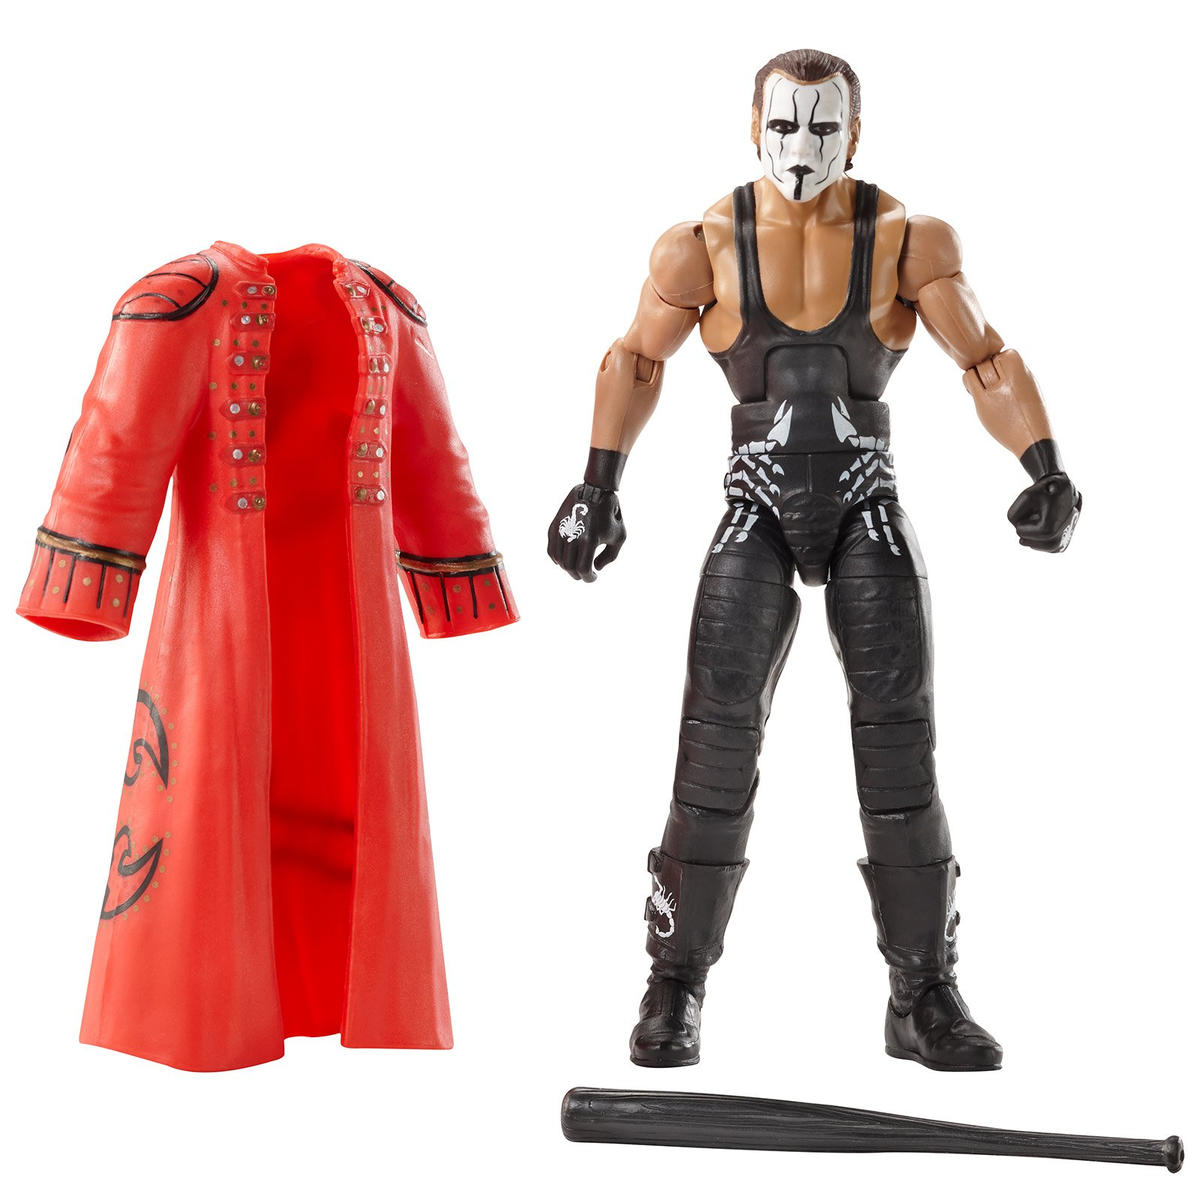 Sting with WrestleMania 31 attire, trademark baseball bat and entrance coat (WWE Hall of Fame Class of 2016)